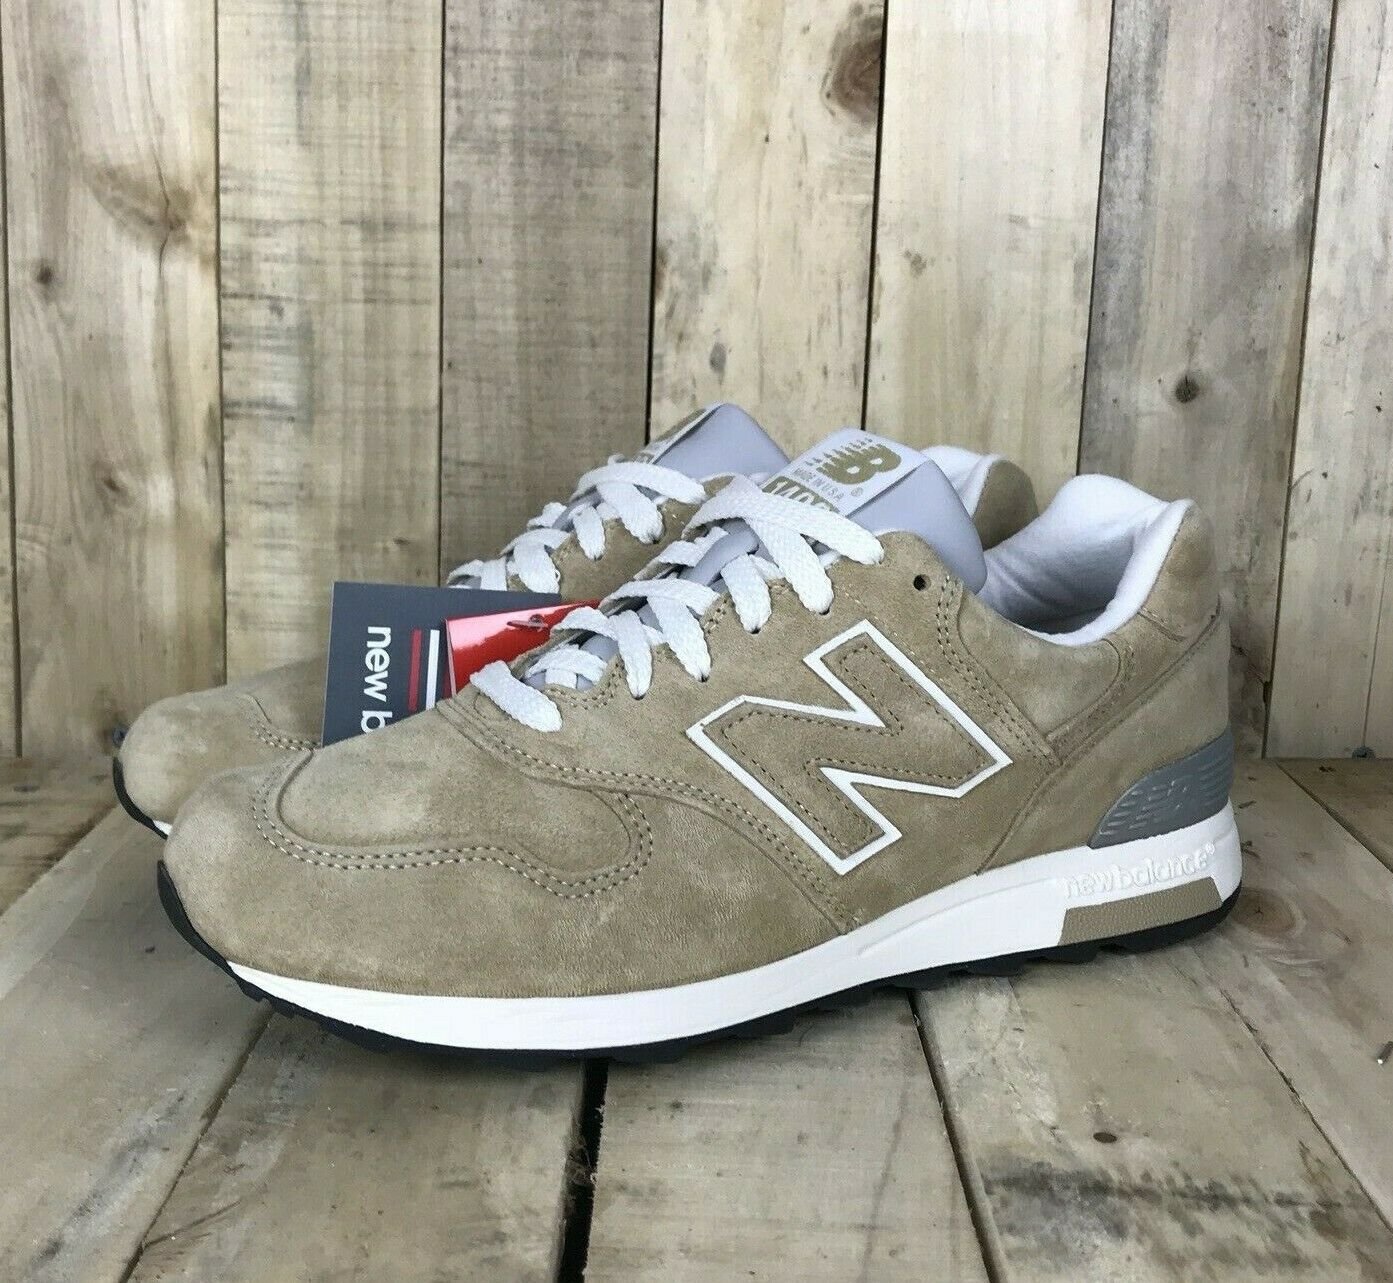 nouveau   1400 classique beige chaussures en daim made in USA Homme Taille 9.5 NEUF